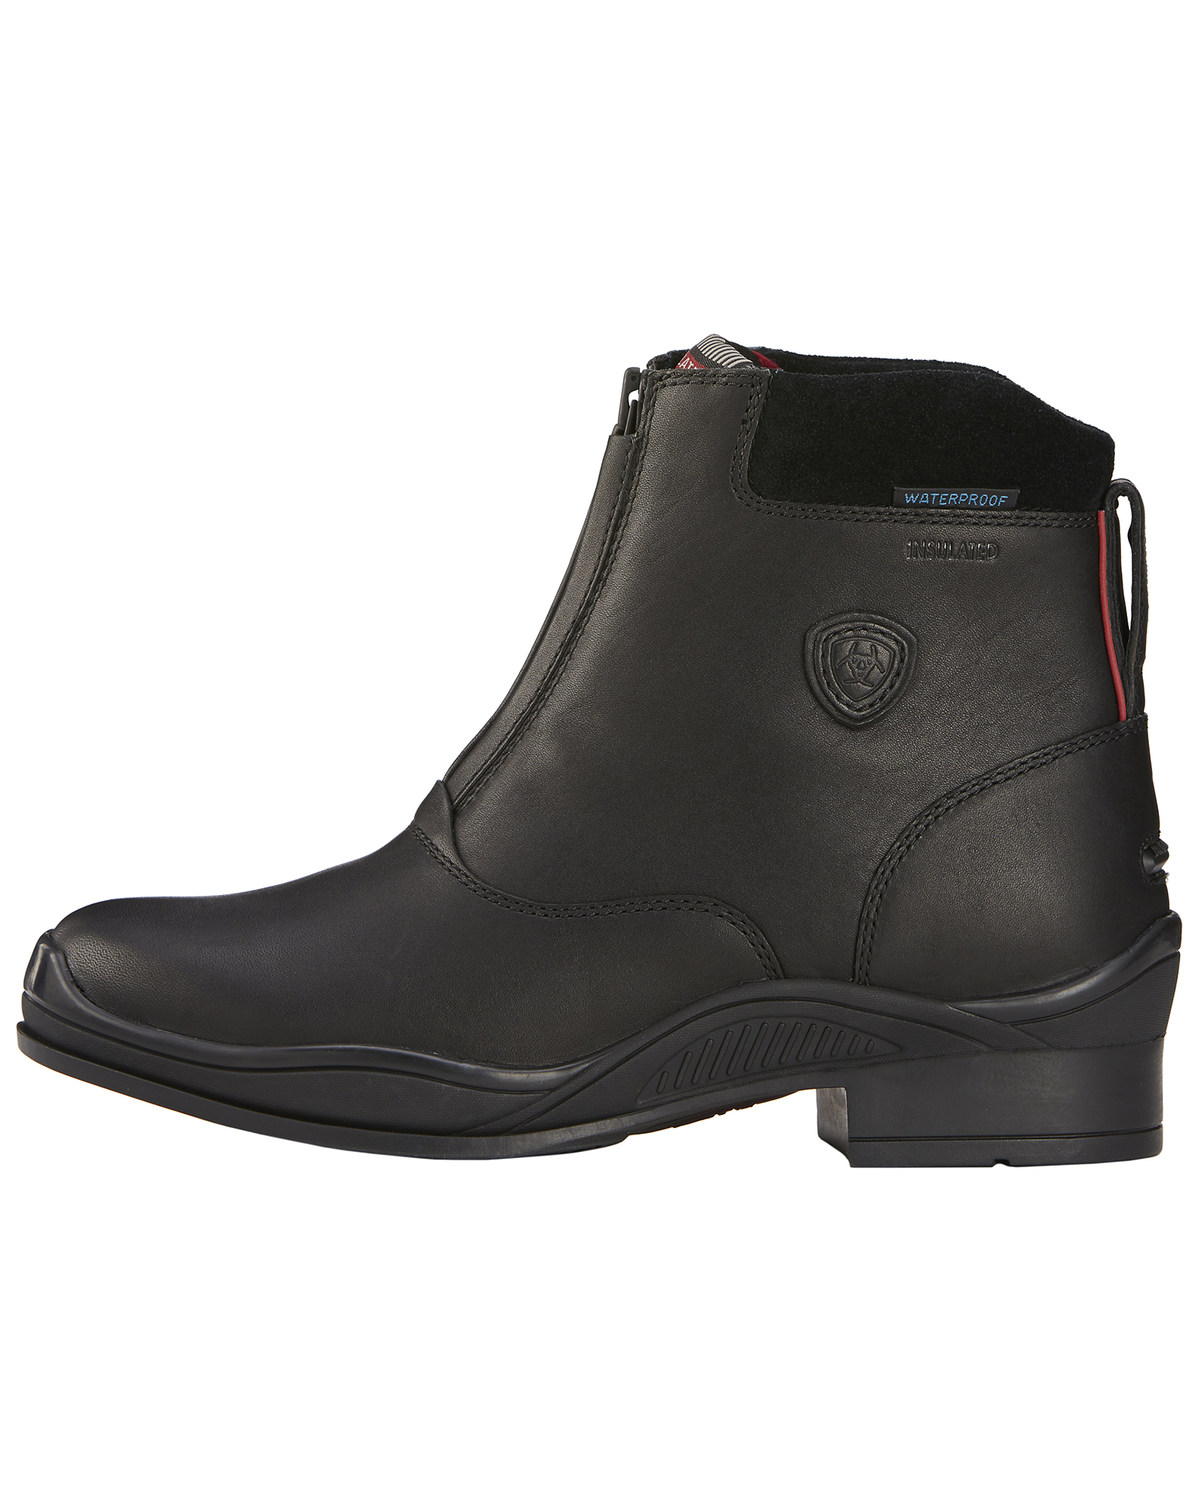 Ariat Women's Extreme Zip H20 Insulated Boots | Boot Barn